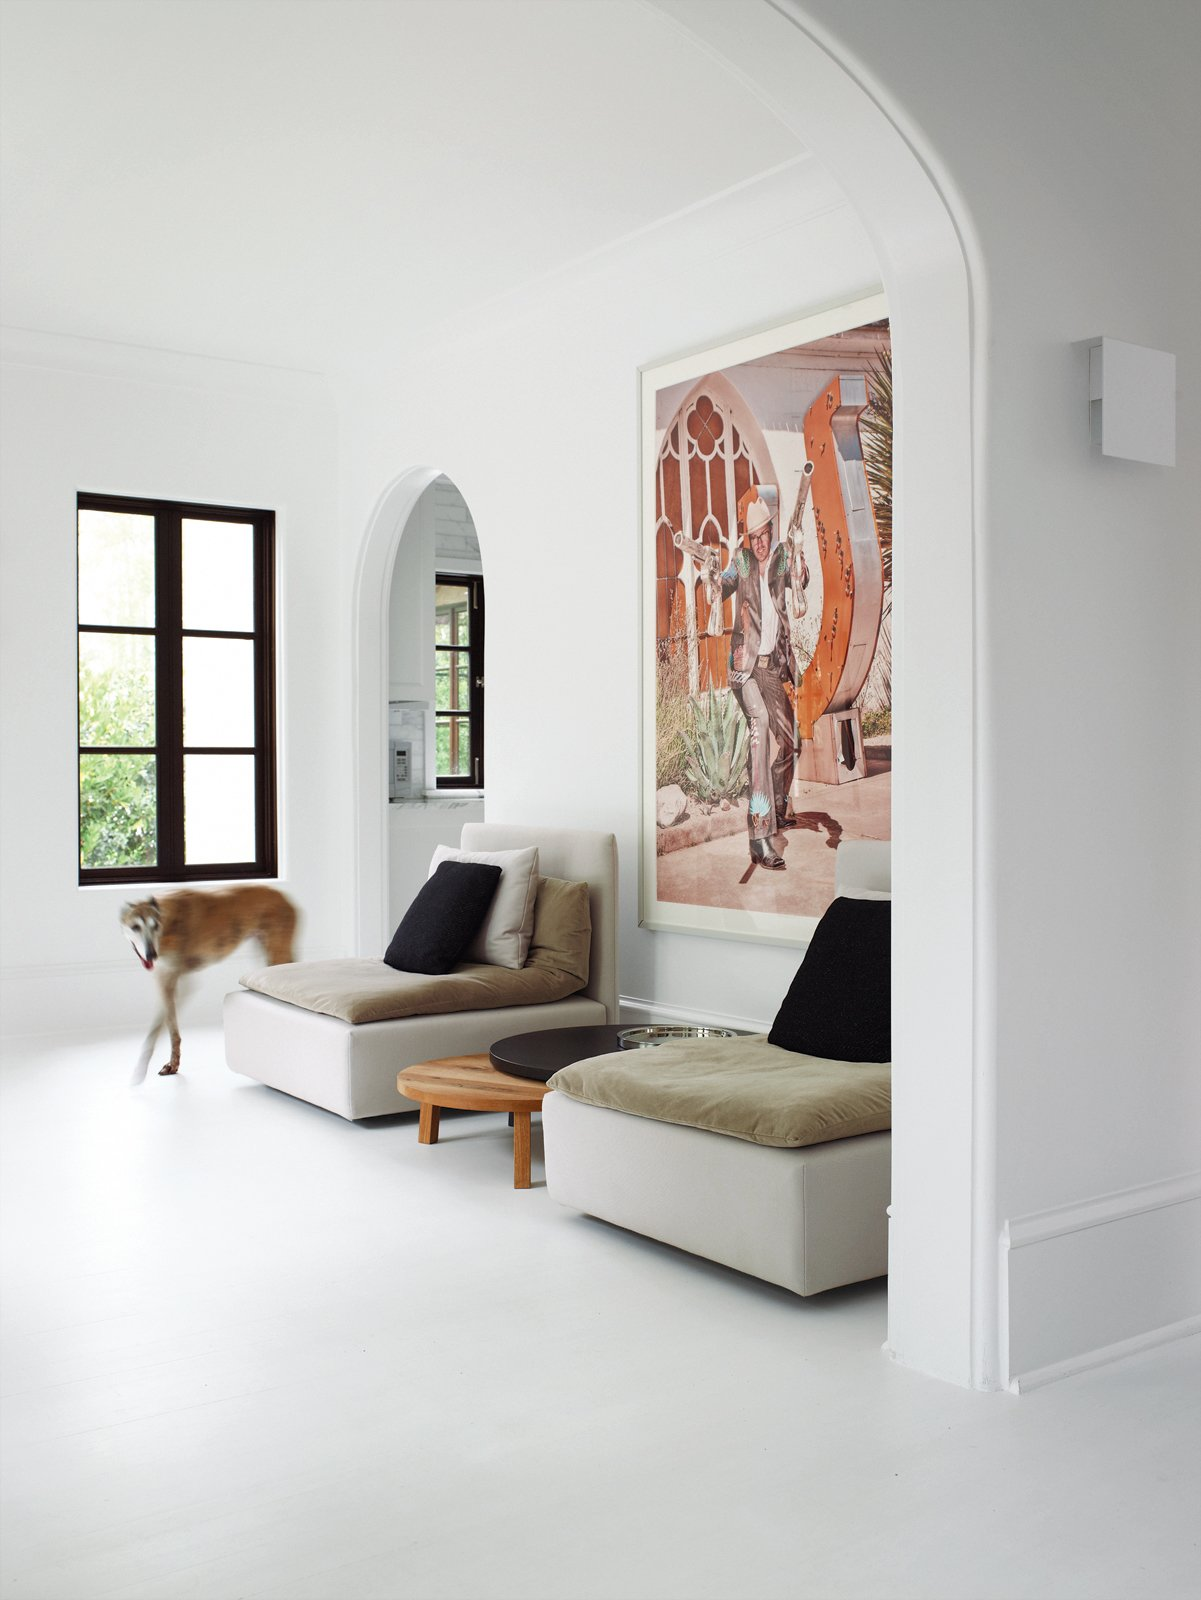 """Living Room, Chair, Coffee Tables, and Painted Wood Floor Two pieces from E15's Shiraz sofa flank   the company's wooden Leila side tables.   Hill chose to use flat paint in Benjamin Moore's Decorators White throughout the home   because it emphasizes the chalkiness of the plaster walls, making them """"look almost like slate."""" The sconce shown in the foreground—David Chipperfield's Corrubedo design for   FontanaArte—gives off a soft glow and   replaces the dozens of paper-lampshade   wall fixtures the owners found in the house when they bought it. Stewart Cohen's   zany photograph of a gun-toting Marfa   resident encapsulates Barbara Hill's offbeat brand of decorating: bright and minimal,   yet darkly humorous.  Living Areas from A Designer Brings Her Bold Brand of Texas Modern to this Atlanta Family Home"""